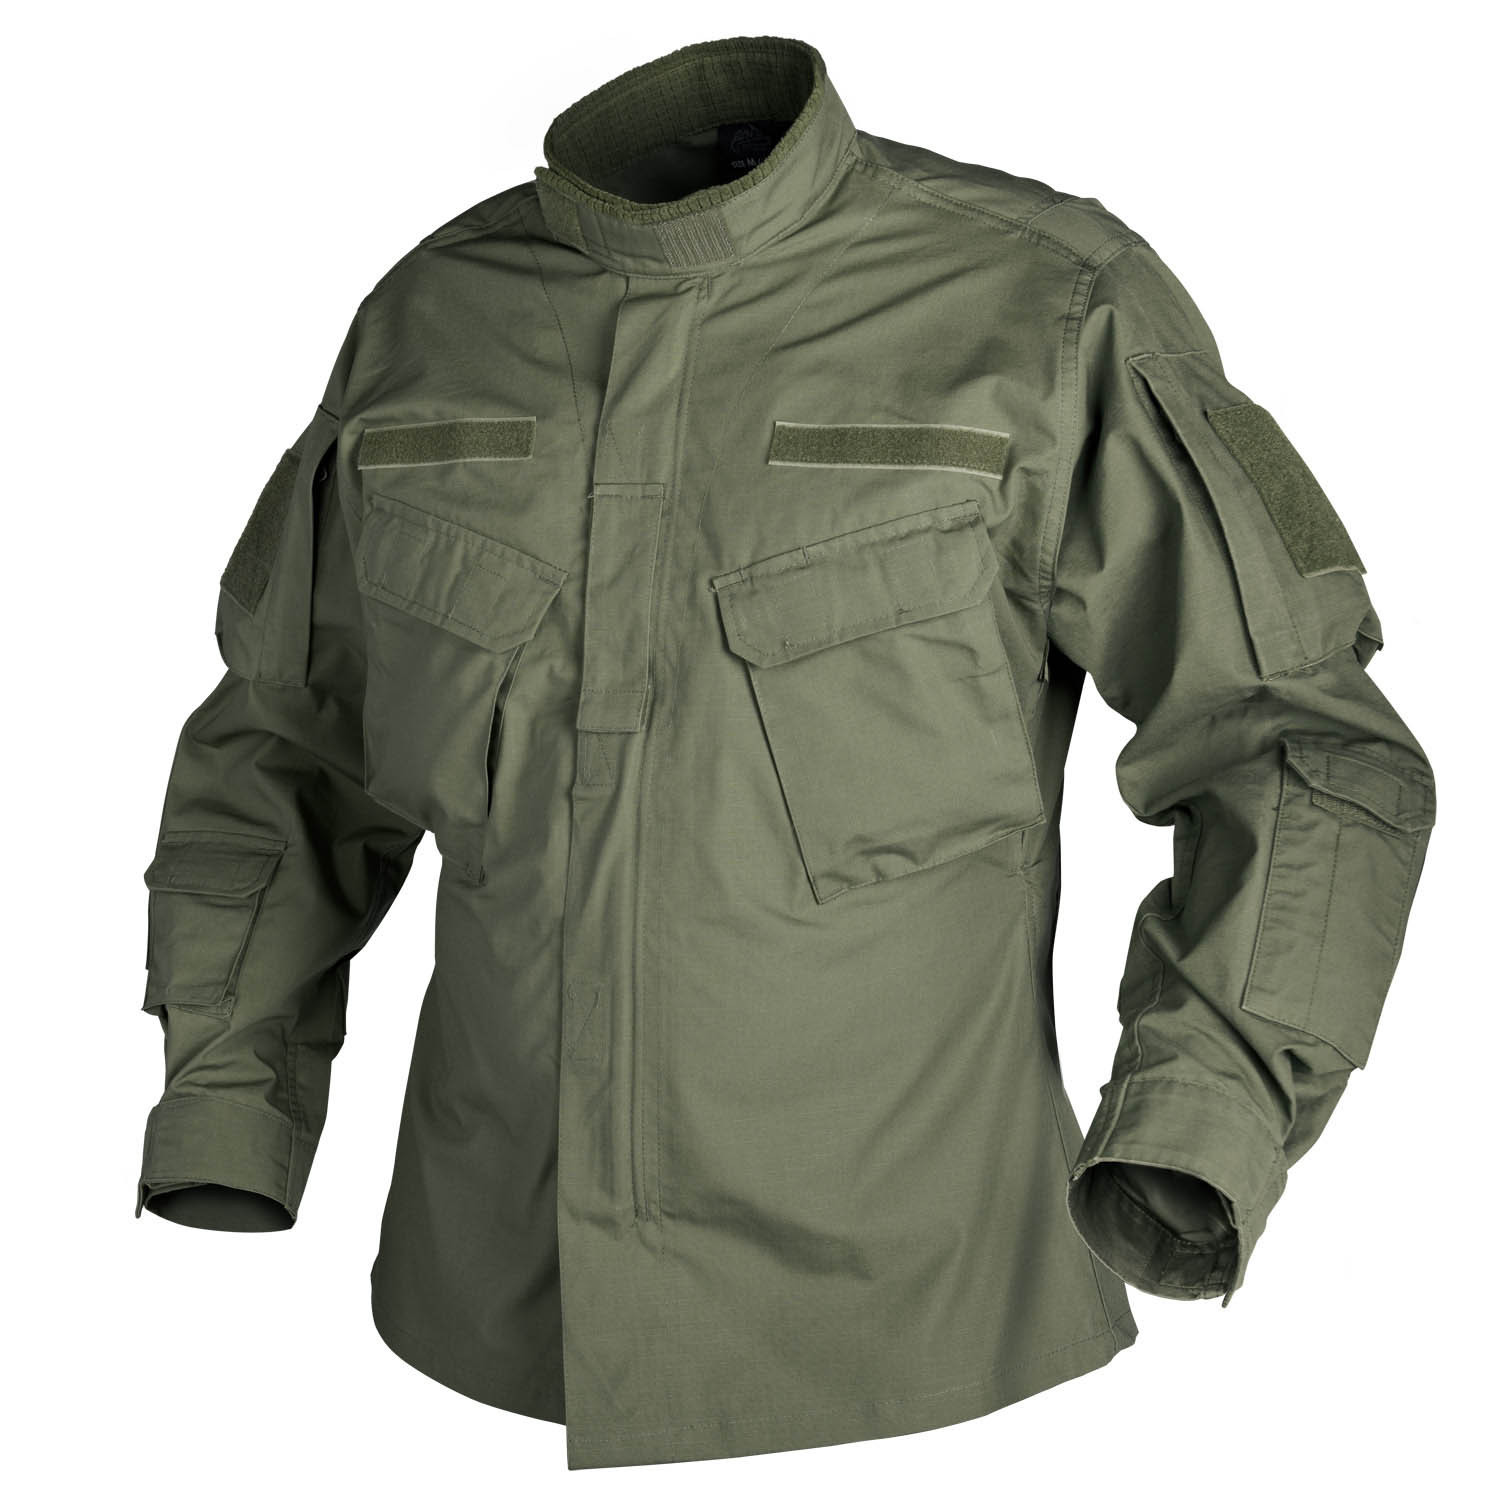 Куртка CPU Helikon-Tex PolyCotton olive green